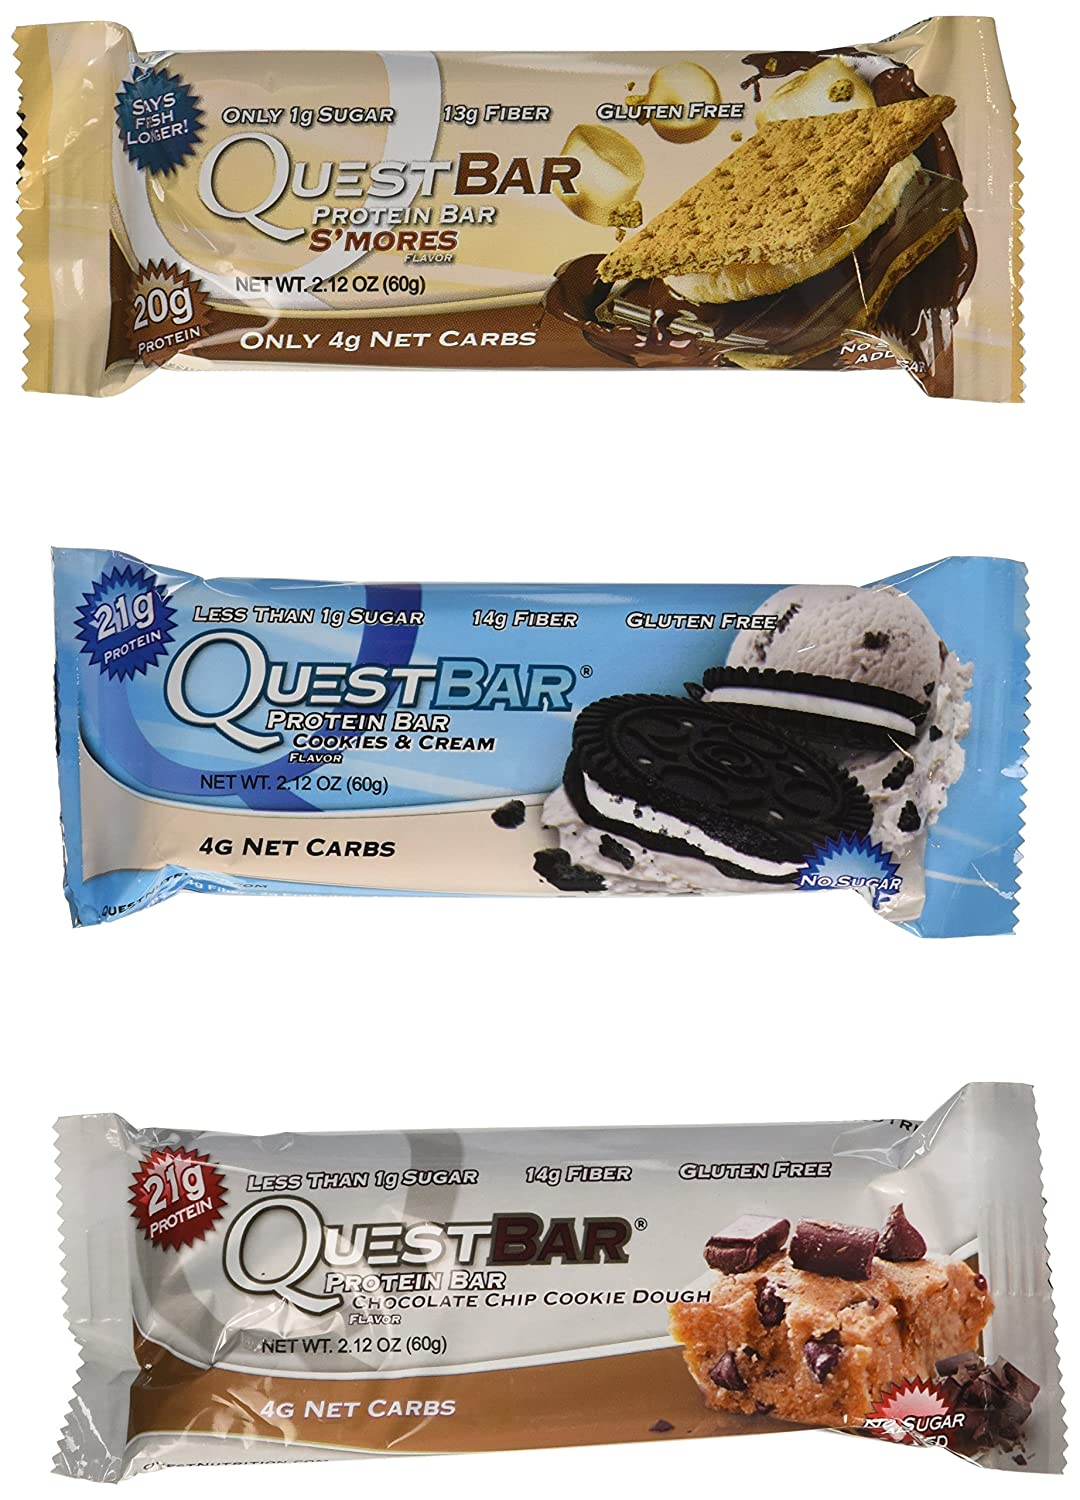 Amazon.com: Quest Nutrition Protein Bar Variety Pack, Including Su0027mores,  Cookies U0026 Cream U0026 Chocolate Chip Cookie Dough, Pack Of 12, 4 Of 2.12 Oz  Each: ...